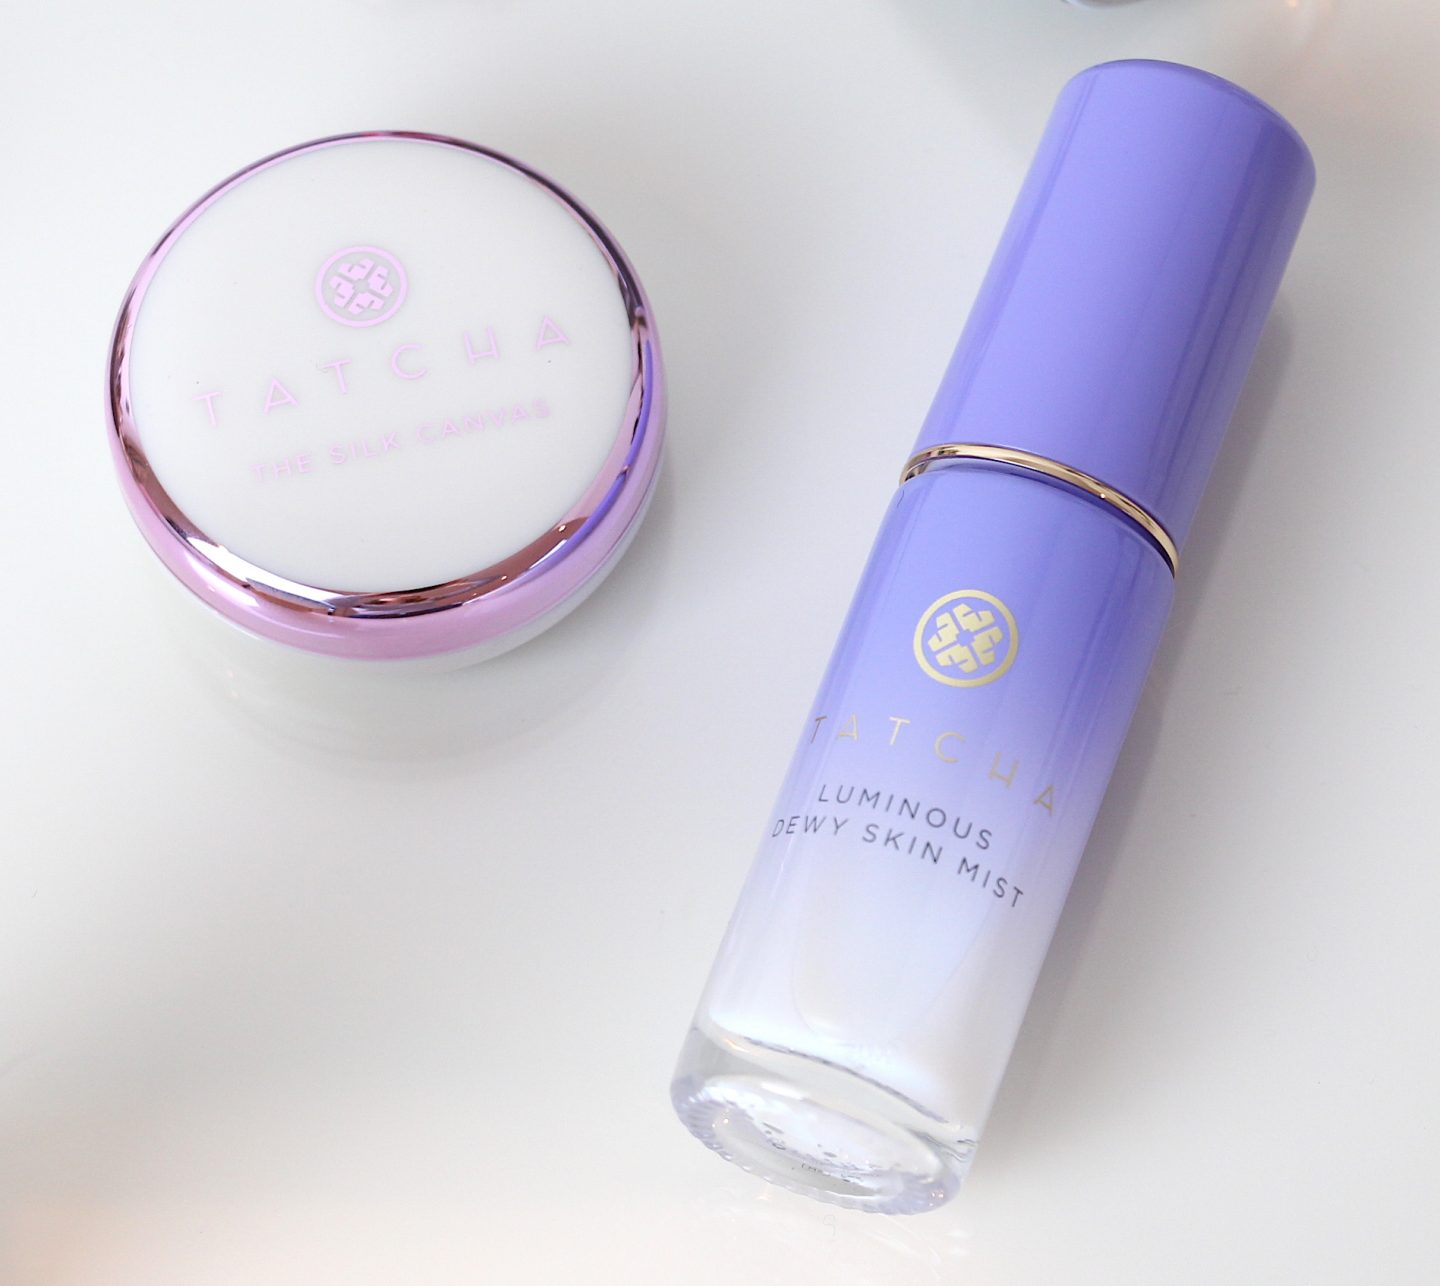 Tatcha The Silk Canvas Primer and Luminous Dewy Skin Mist Minis